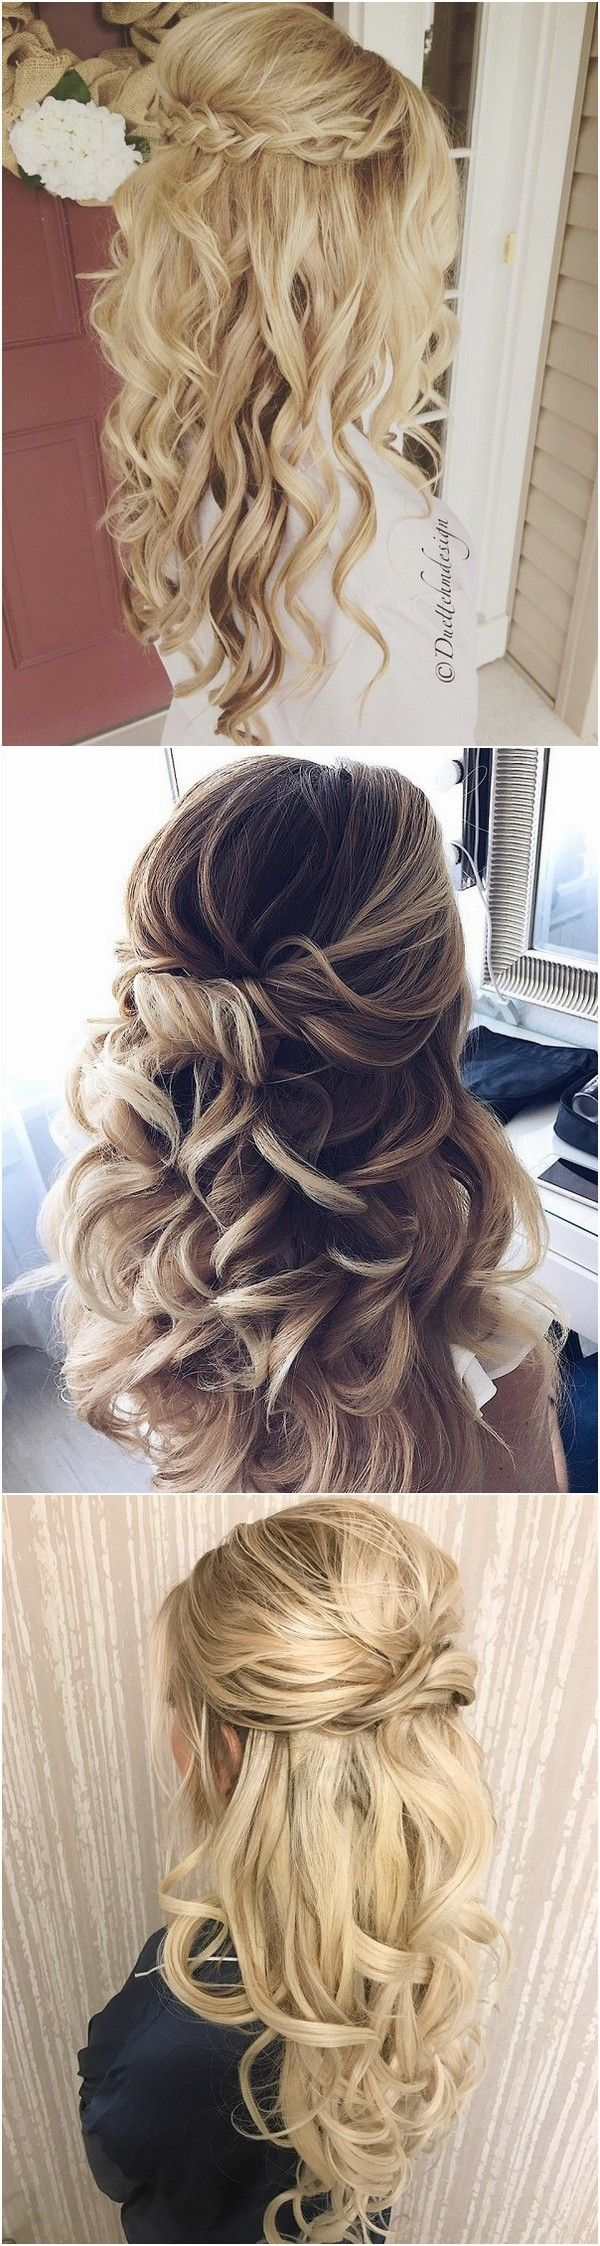 2017 06 homecoming hairstyles long hair - Top 15 Wedding Hairstyles For 2017 Trends Bridesmaid Hairstyleshomecoming Hairstyles Downhomecoming Hair